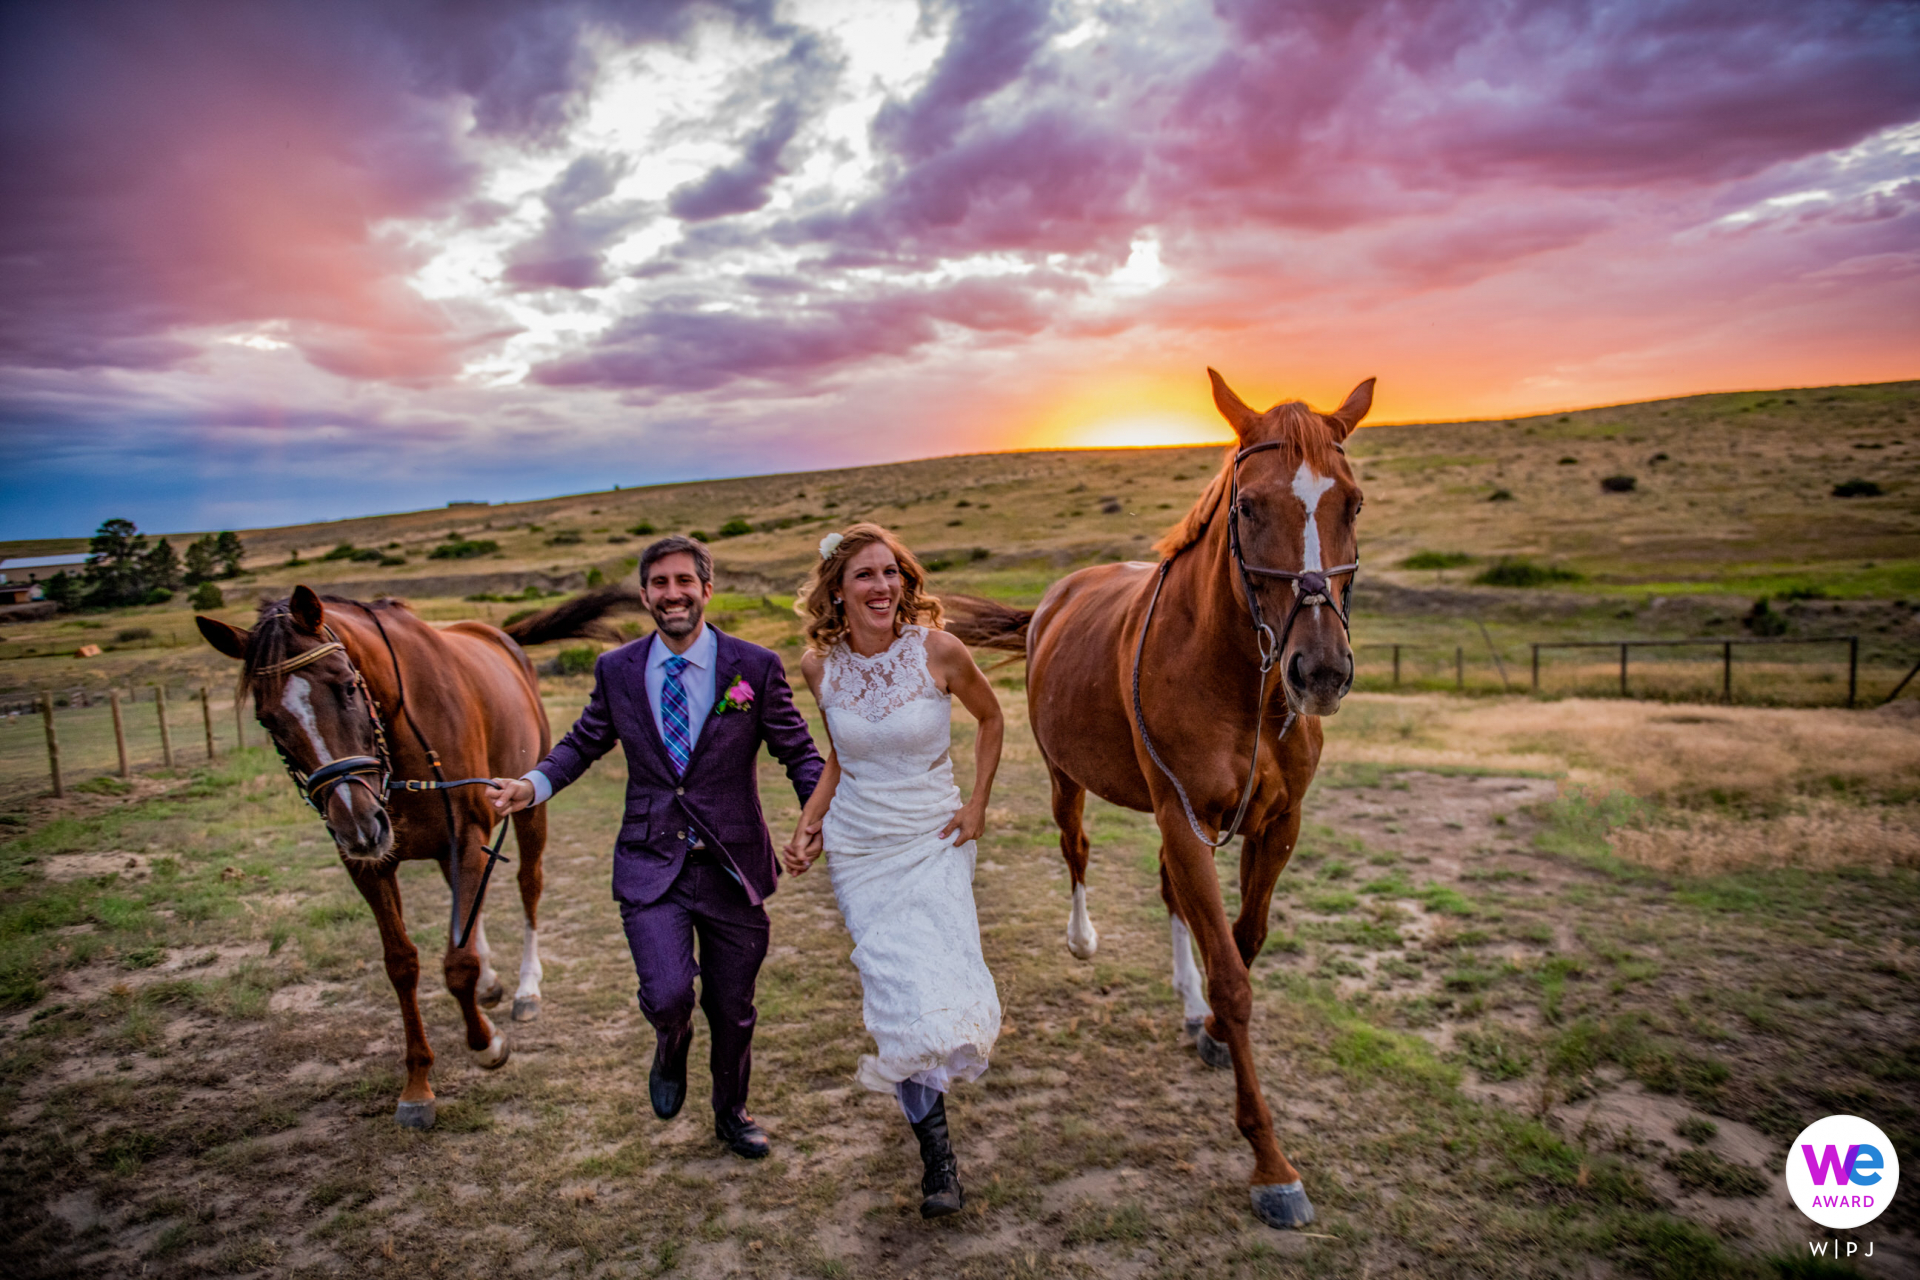 Adventure wedding picture story at a Parker, CO Horse Farm by Kathleen Ricker